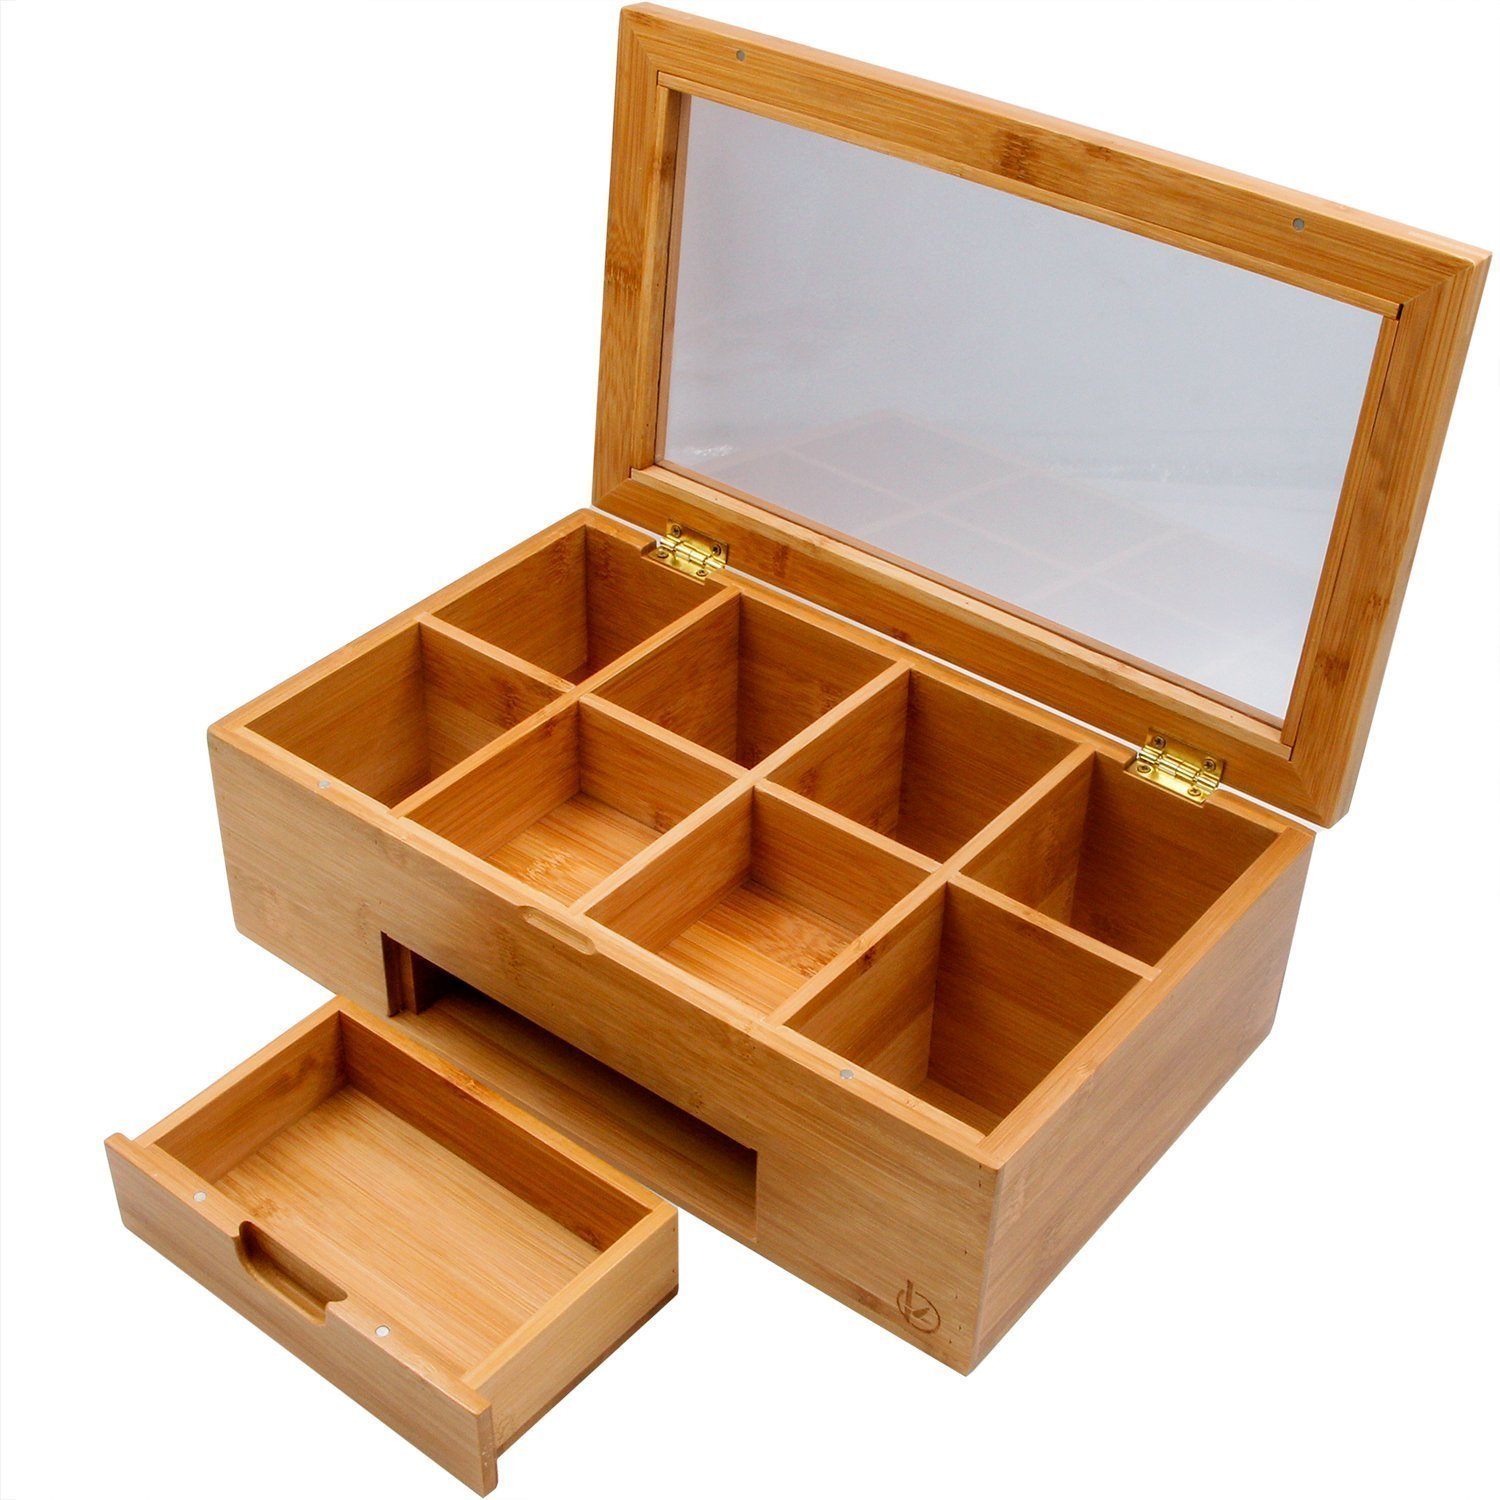 Good-Love Bamboo Tea Box Natural Chest Storage Organizer with Slide Out Drawer, 8 Compartments - Great Gift Idea